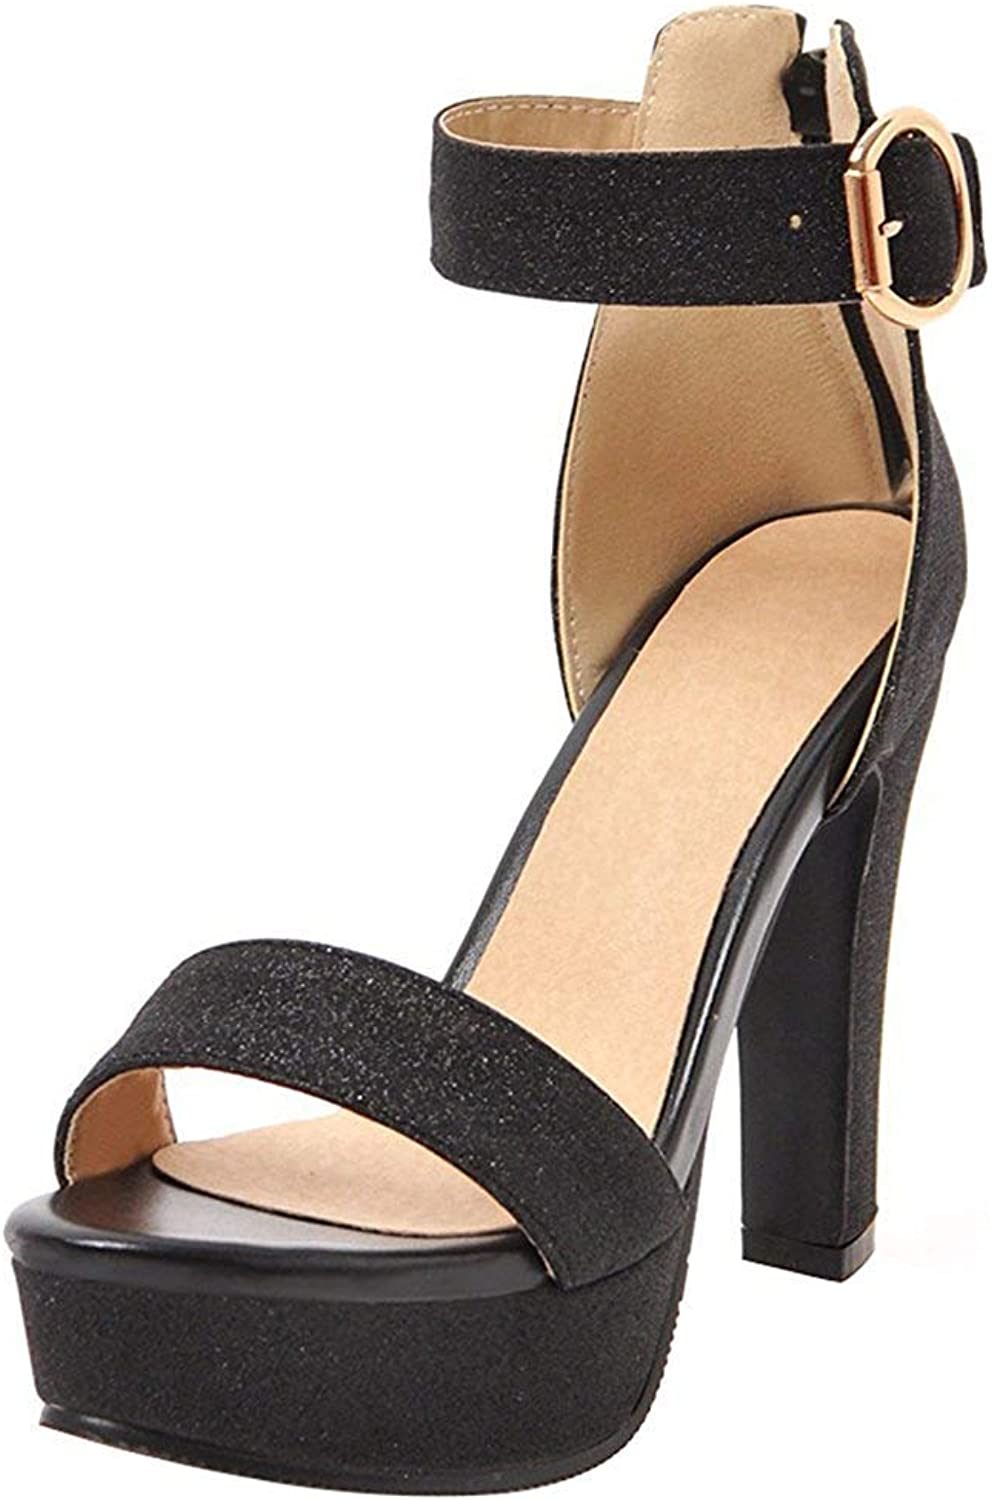 Gedigits Women's Sexy Sequined Buckle Ankle Strap Open Toe Chunky High Heels Platform Sandals with Zipper Purple 6.5 M US